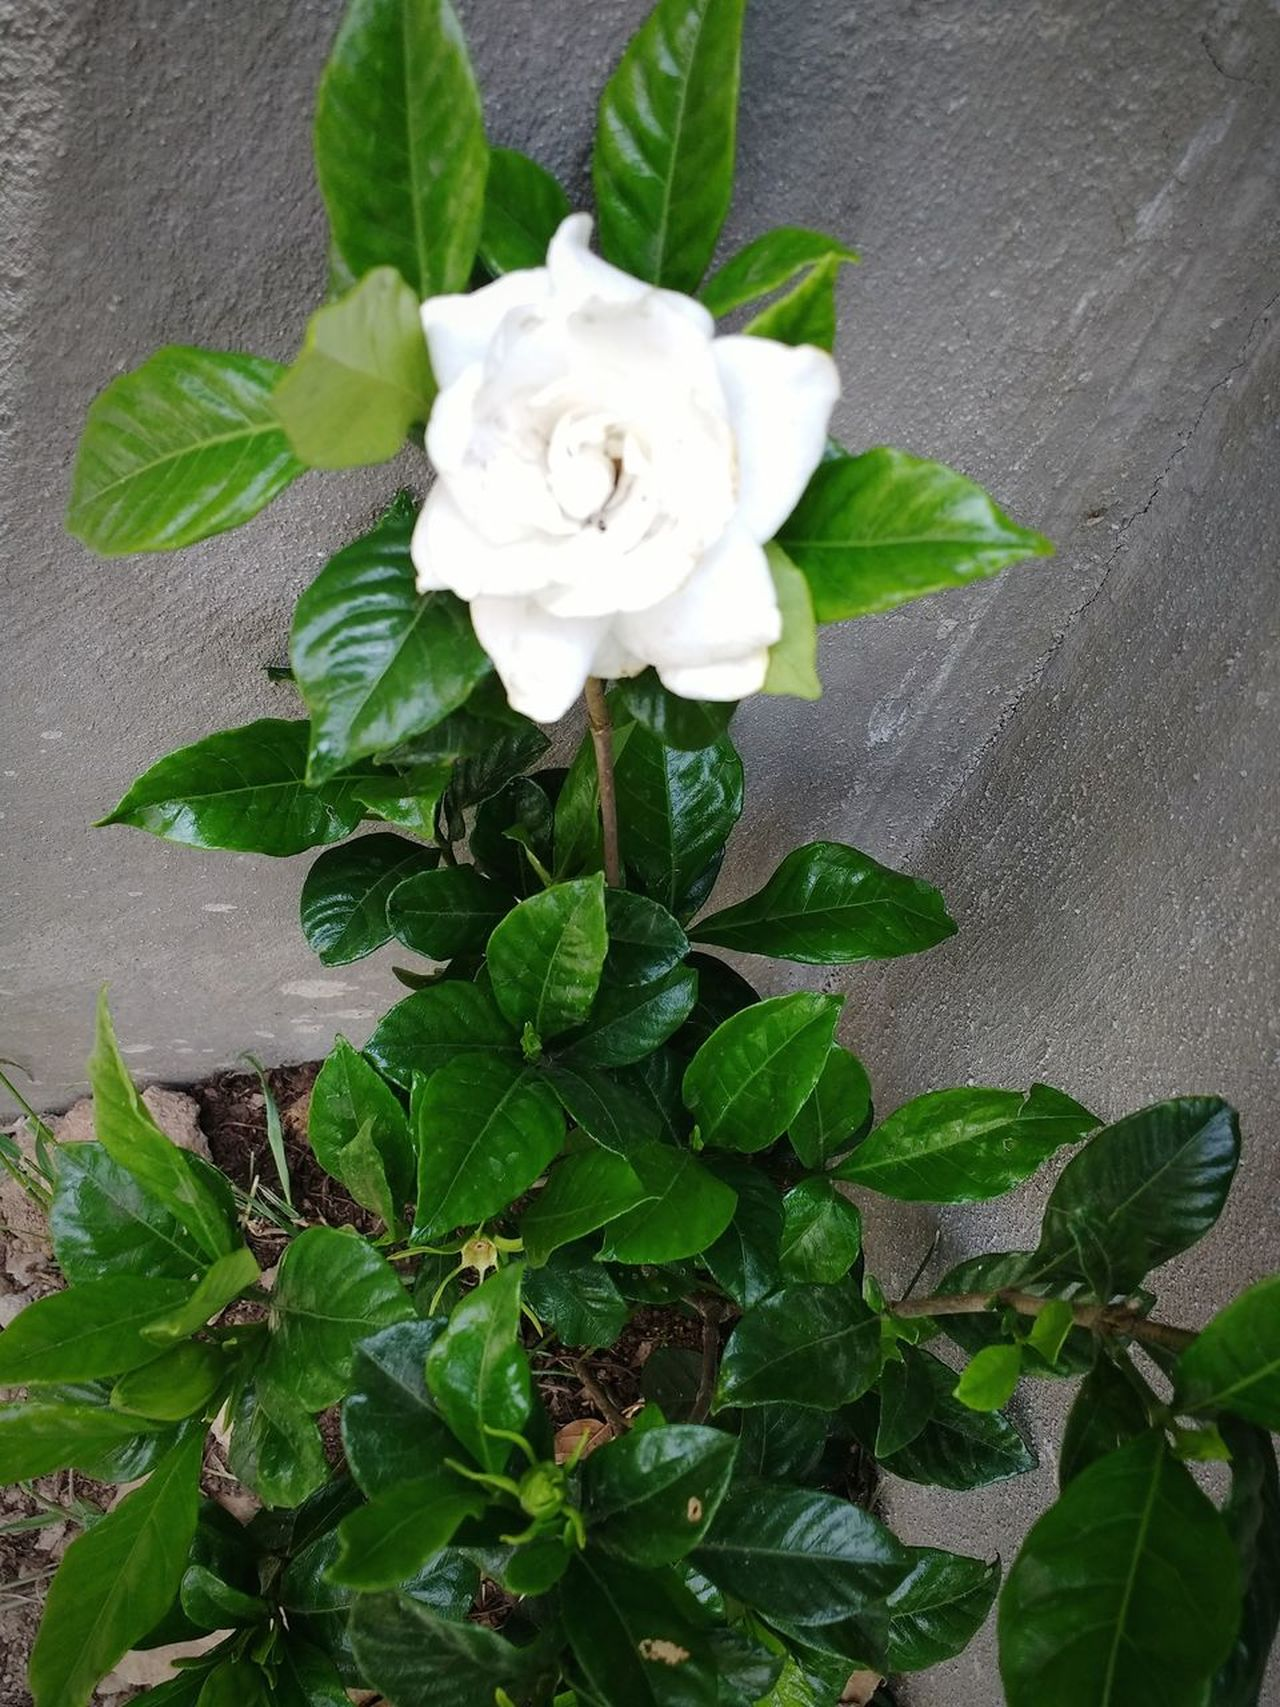 Flower Leaf Petal High Angle View Fragility Nature Growth Close-up Plant Green Color Freshness Flower Head Day Beauty In Nature No People Outdoors Gardenia Flower Gardenia Mexico